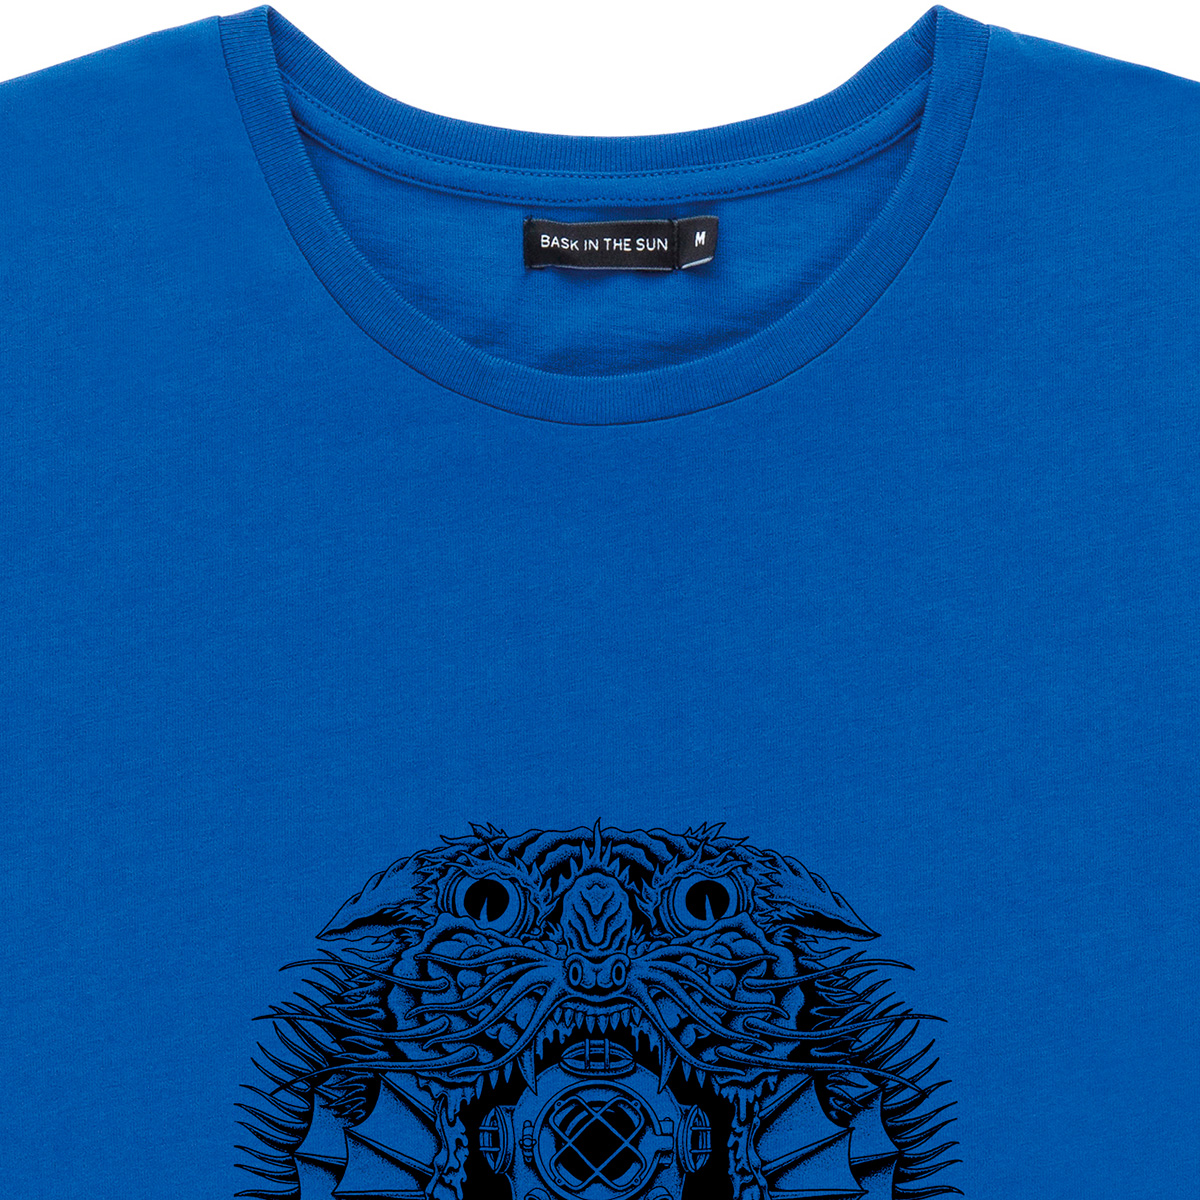 T-shirt en coton bio blue creature - Bask in the Sun num 1